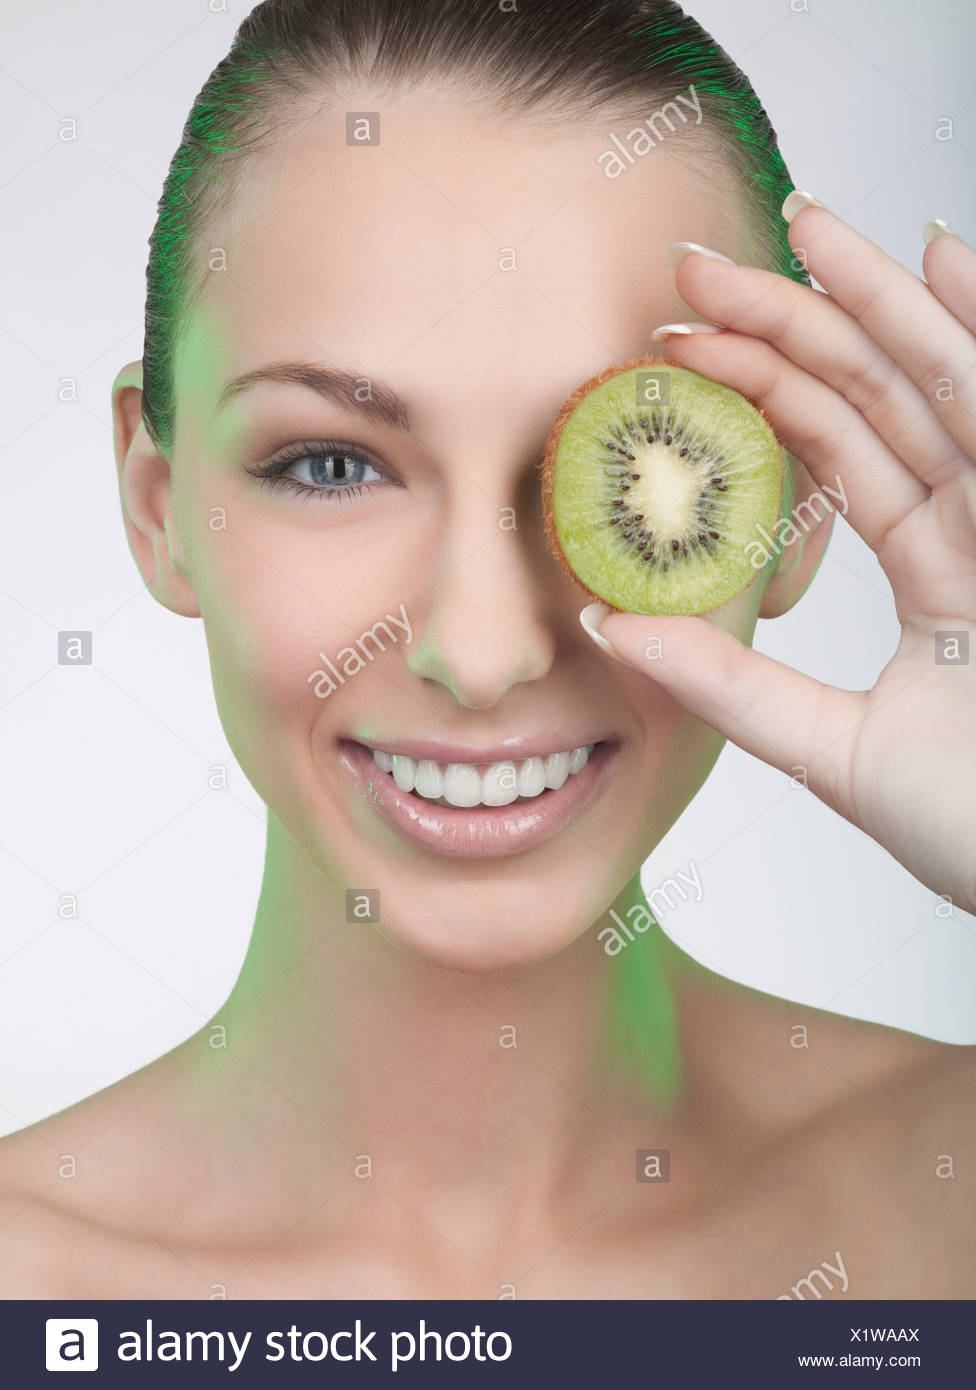 A woman holding a slice of kiwi fruit in front of her eye - Stock Image